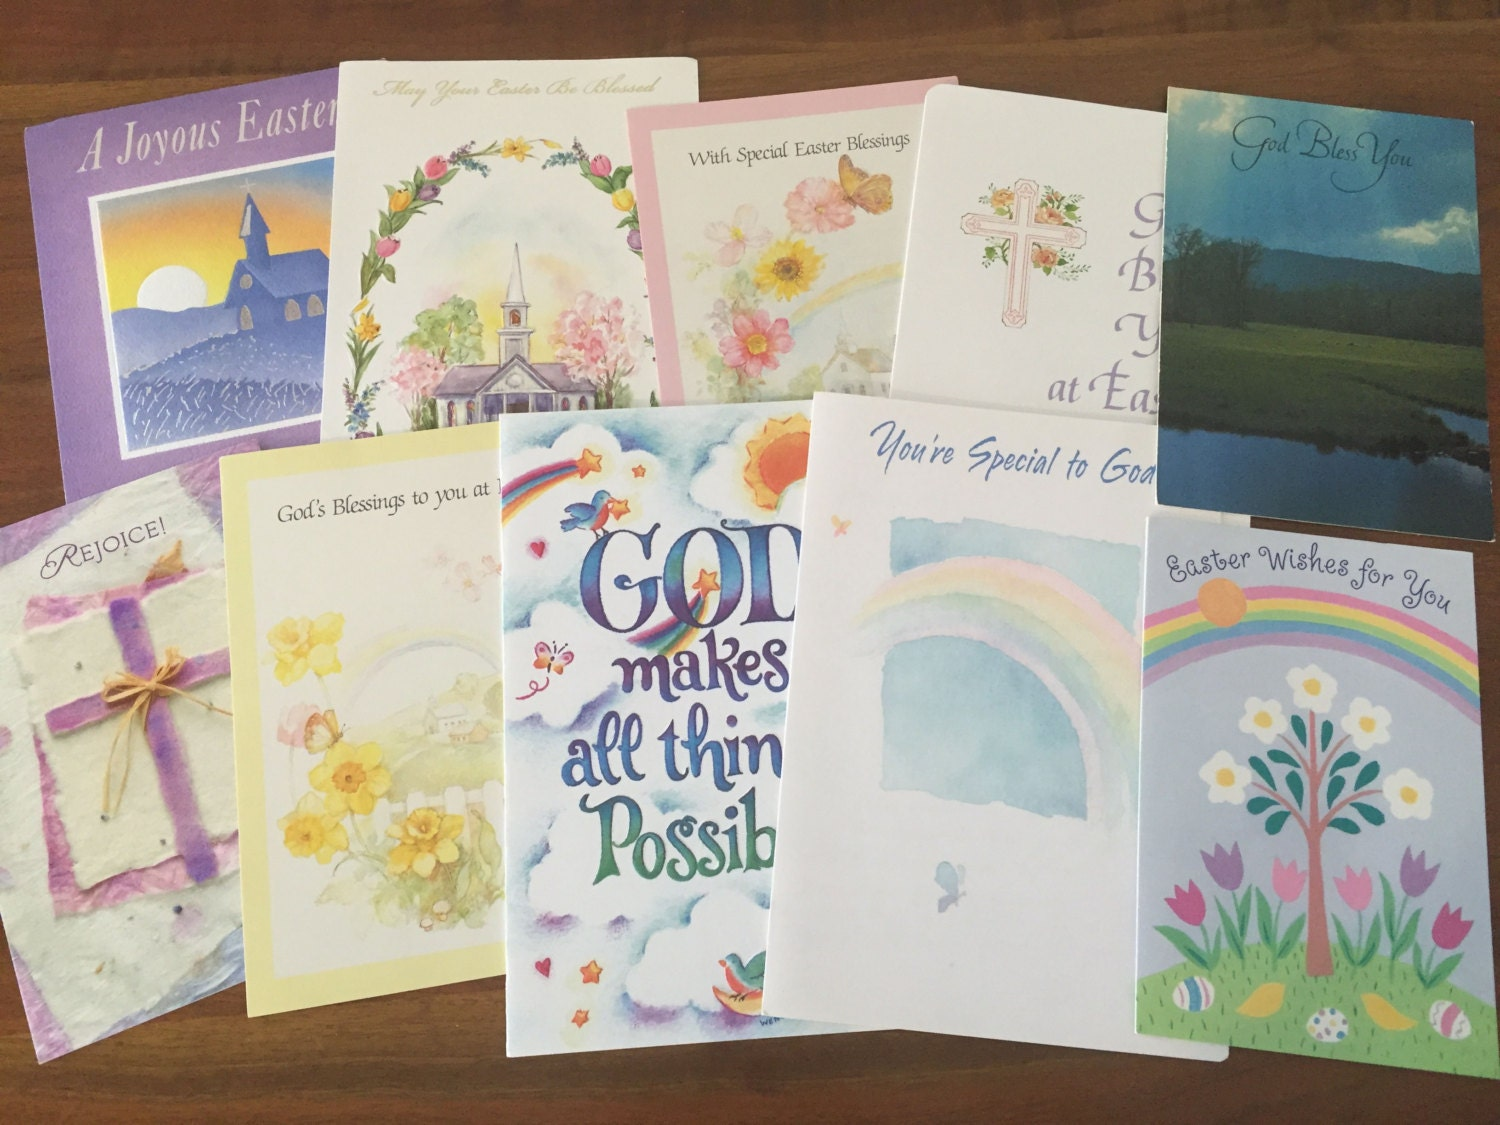 10 vintage easter cards used greeting cards from the 1970s zoom m4hsunfo